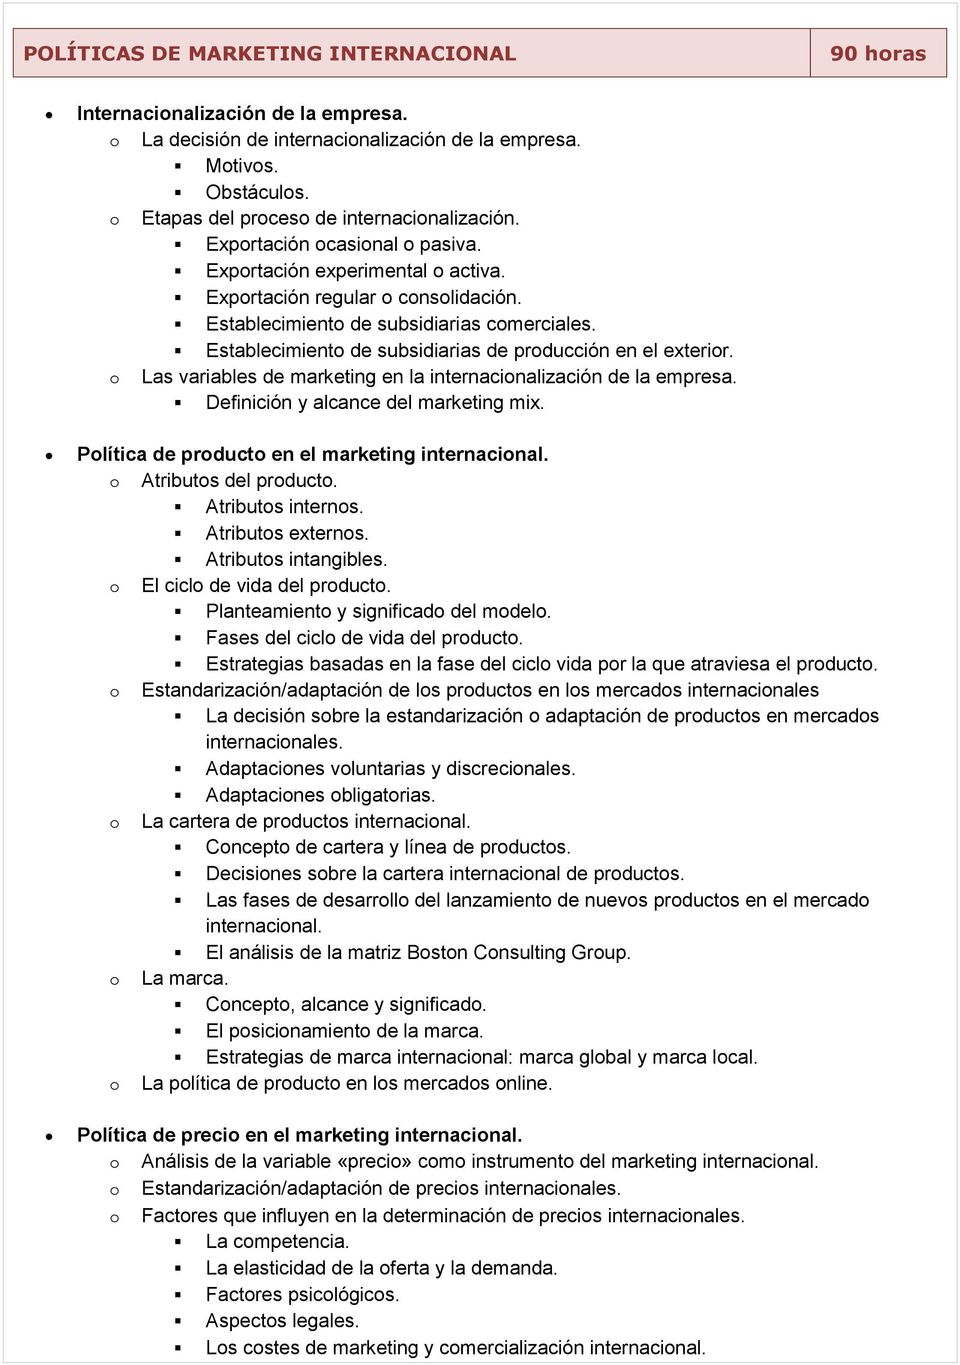 Las variables de marketing en la internacinalización de la empresa. Definición y alcance del marketing mix. Plítica de prduct en el marketing internacinal. Atributs del prduct. Atributs interns.